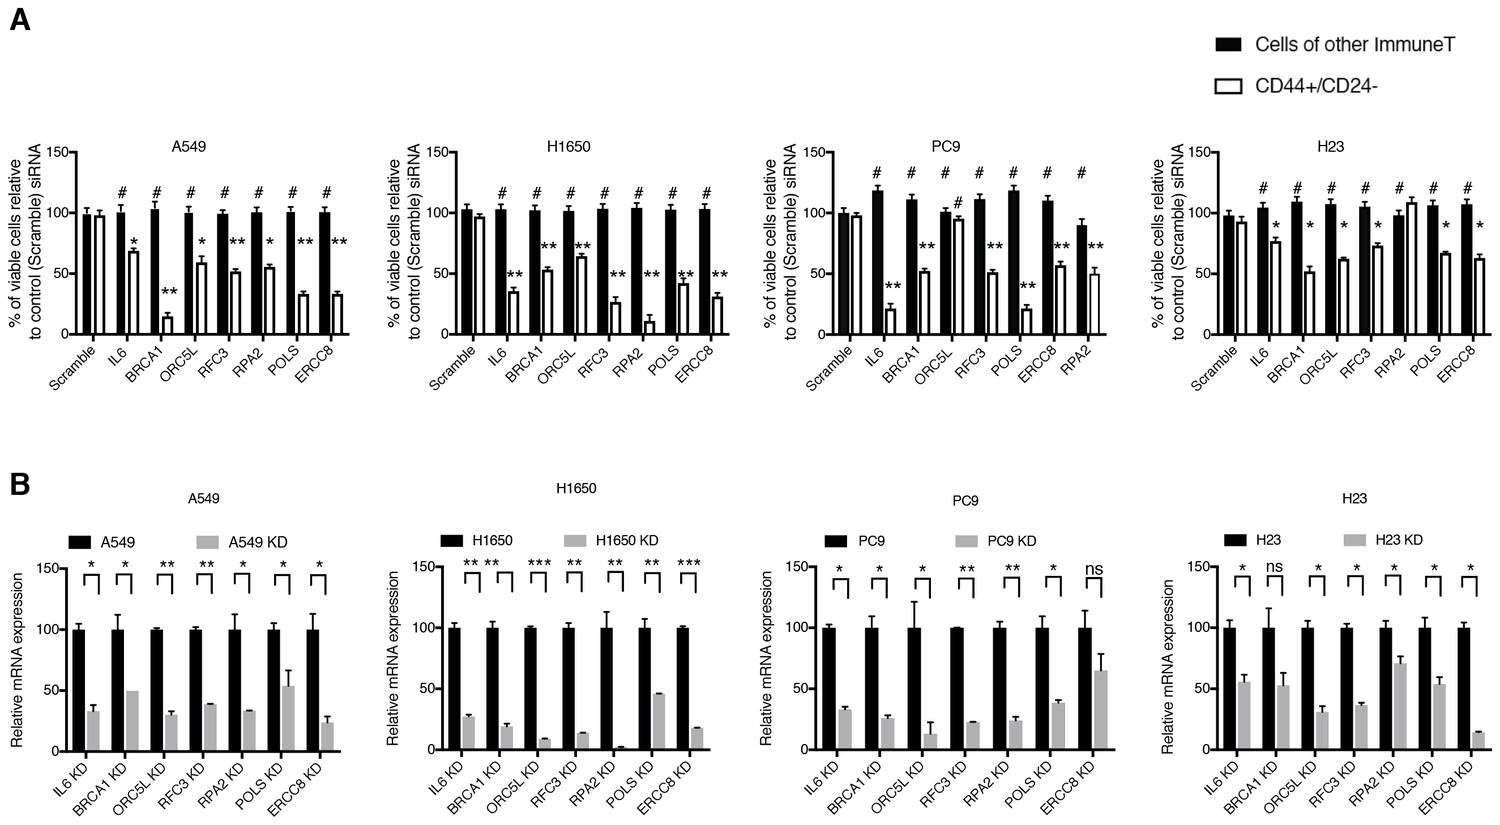 Tgf Reduces Dna Ds Break Repair Mechanisms To Heighten Genetic Sp Reguler Axis Hitz Validation Of Shrna Screen Hits In Tumor Derived Cell Lines Facs Sorted On The Basis Surface Expression Cd44 And Cd24